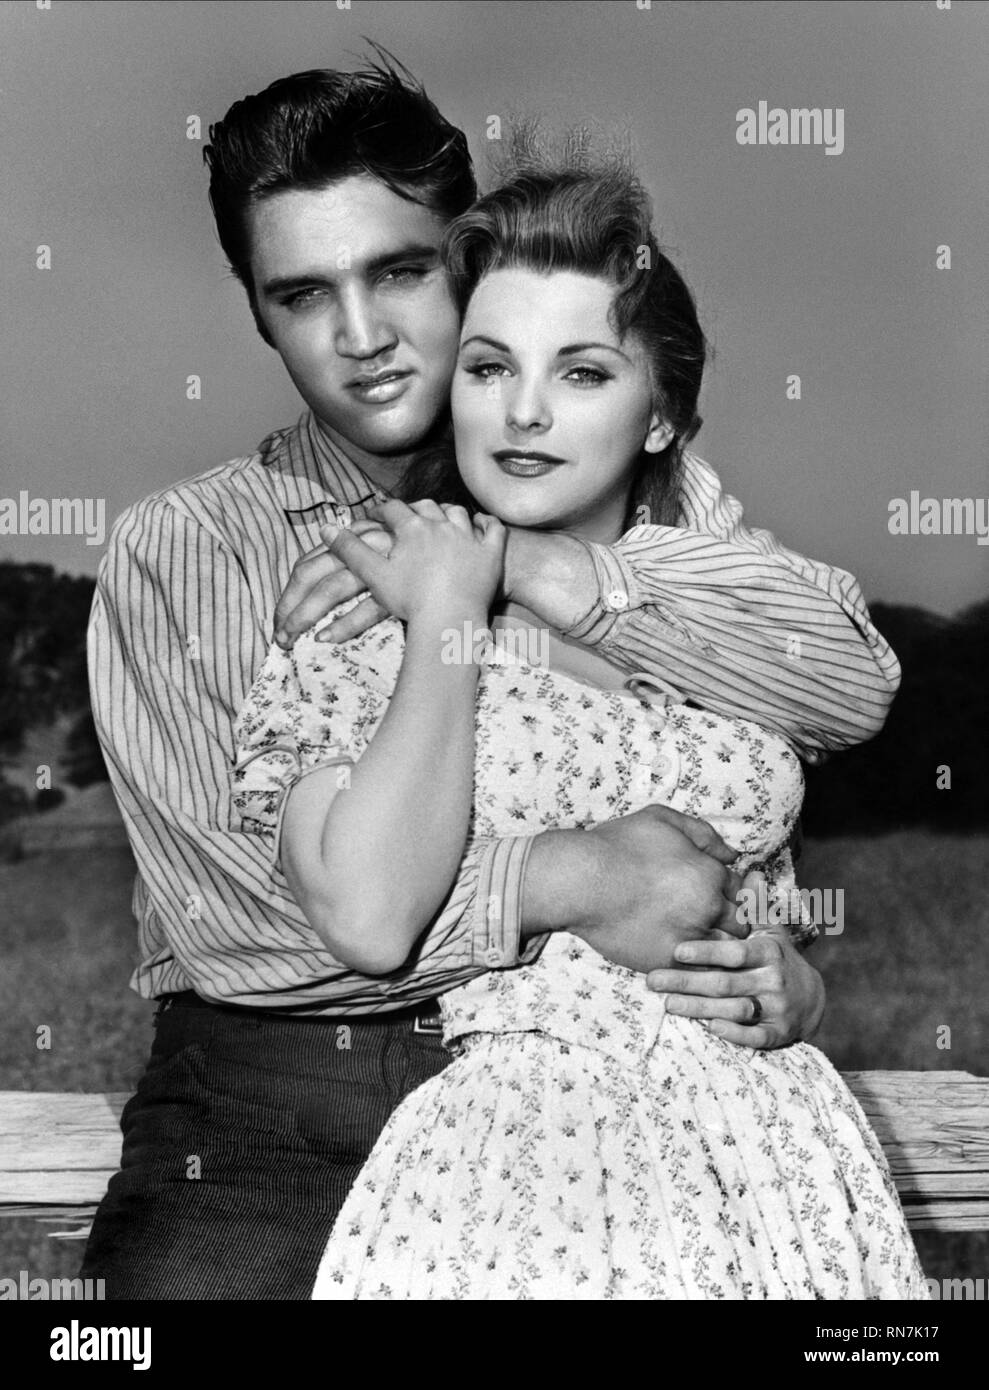 PRESLEY,PAGET, LOVE ME TENDER, 1956 - Stock Image